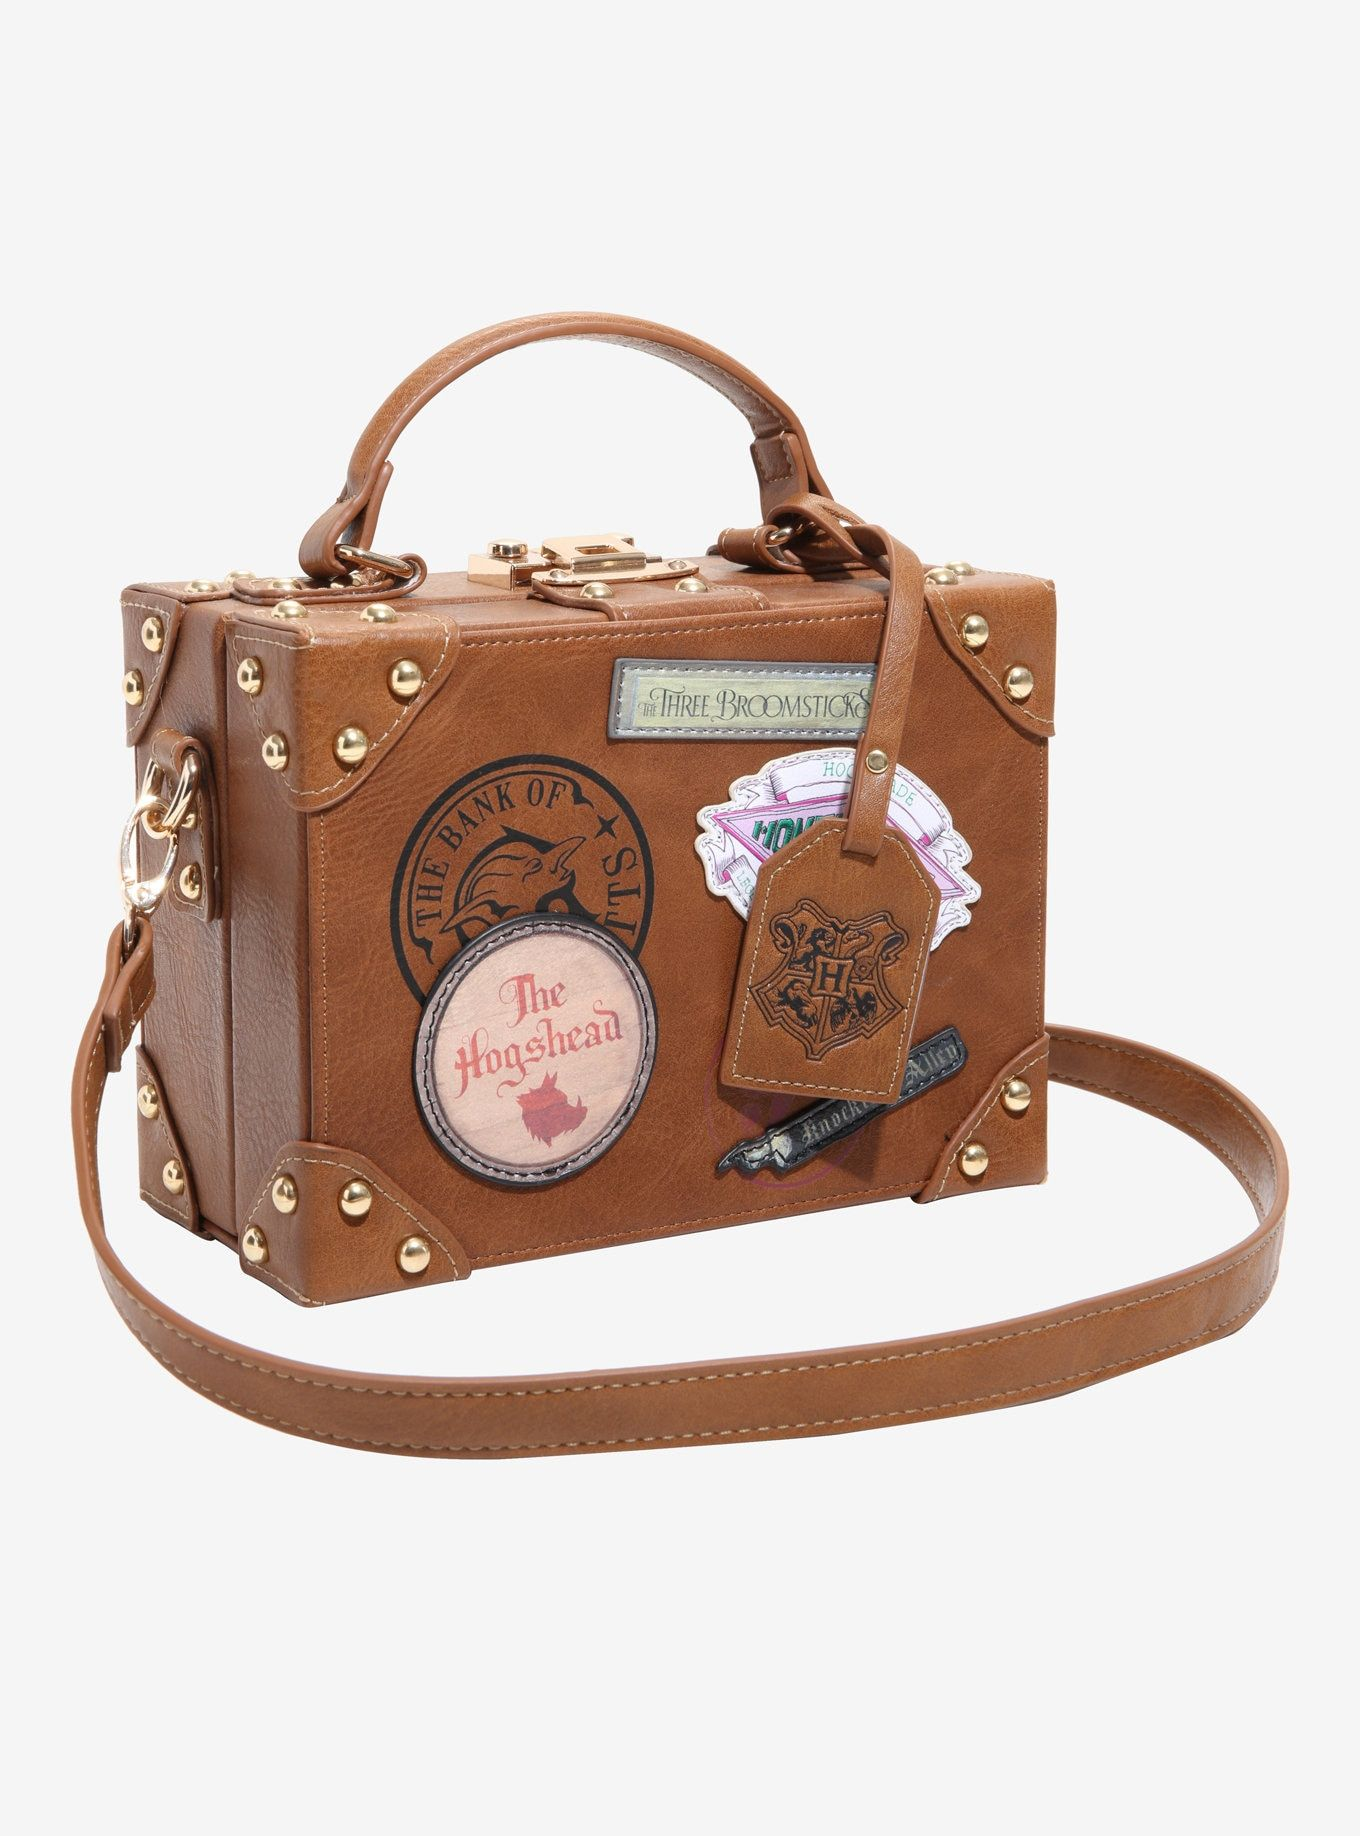 4a207ab2d4 HARRY POTTER VINTAGE TRUNK CROSSBODY BAG - Pack your bags and get ready to  head to Hogwarts! This trunk style handbag from Harry Potter is the perfect  place ...